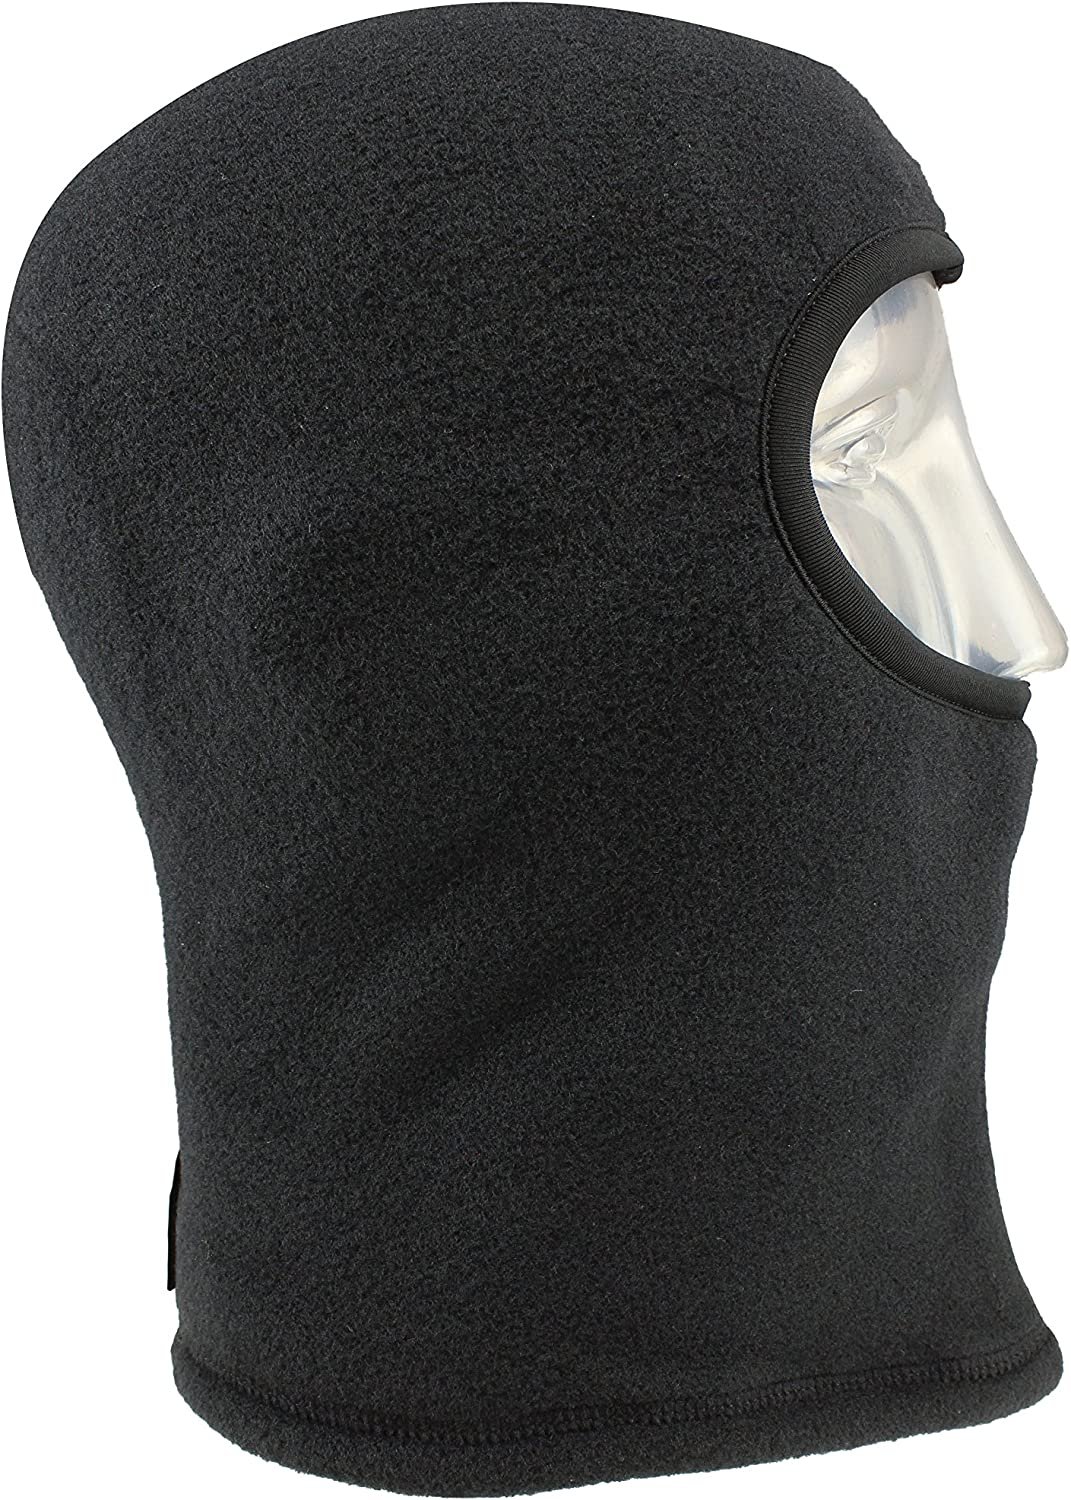 Seirus Innovation 2875 Polartec Winter Cold Weather Balaclava for Complete Head Face and Neck Protection